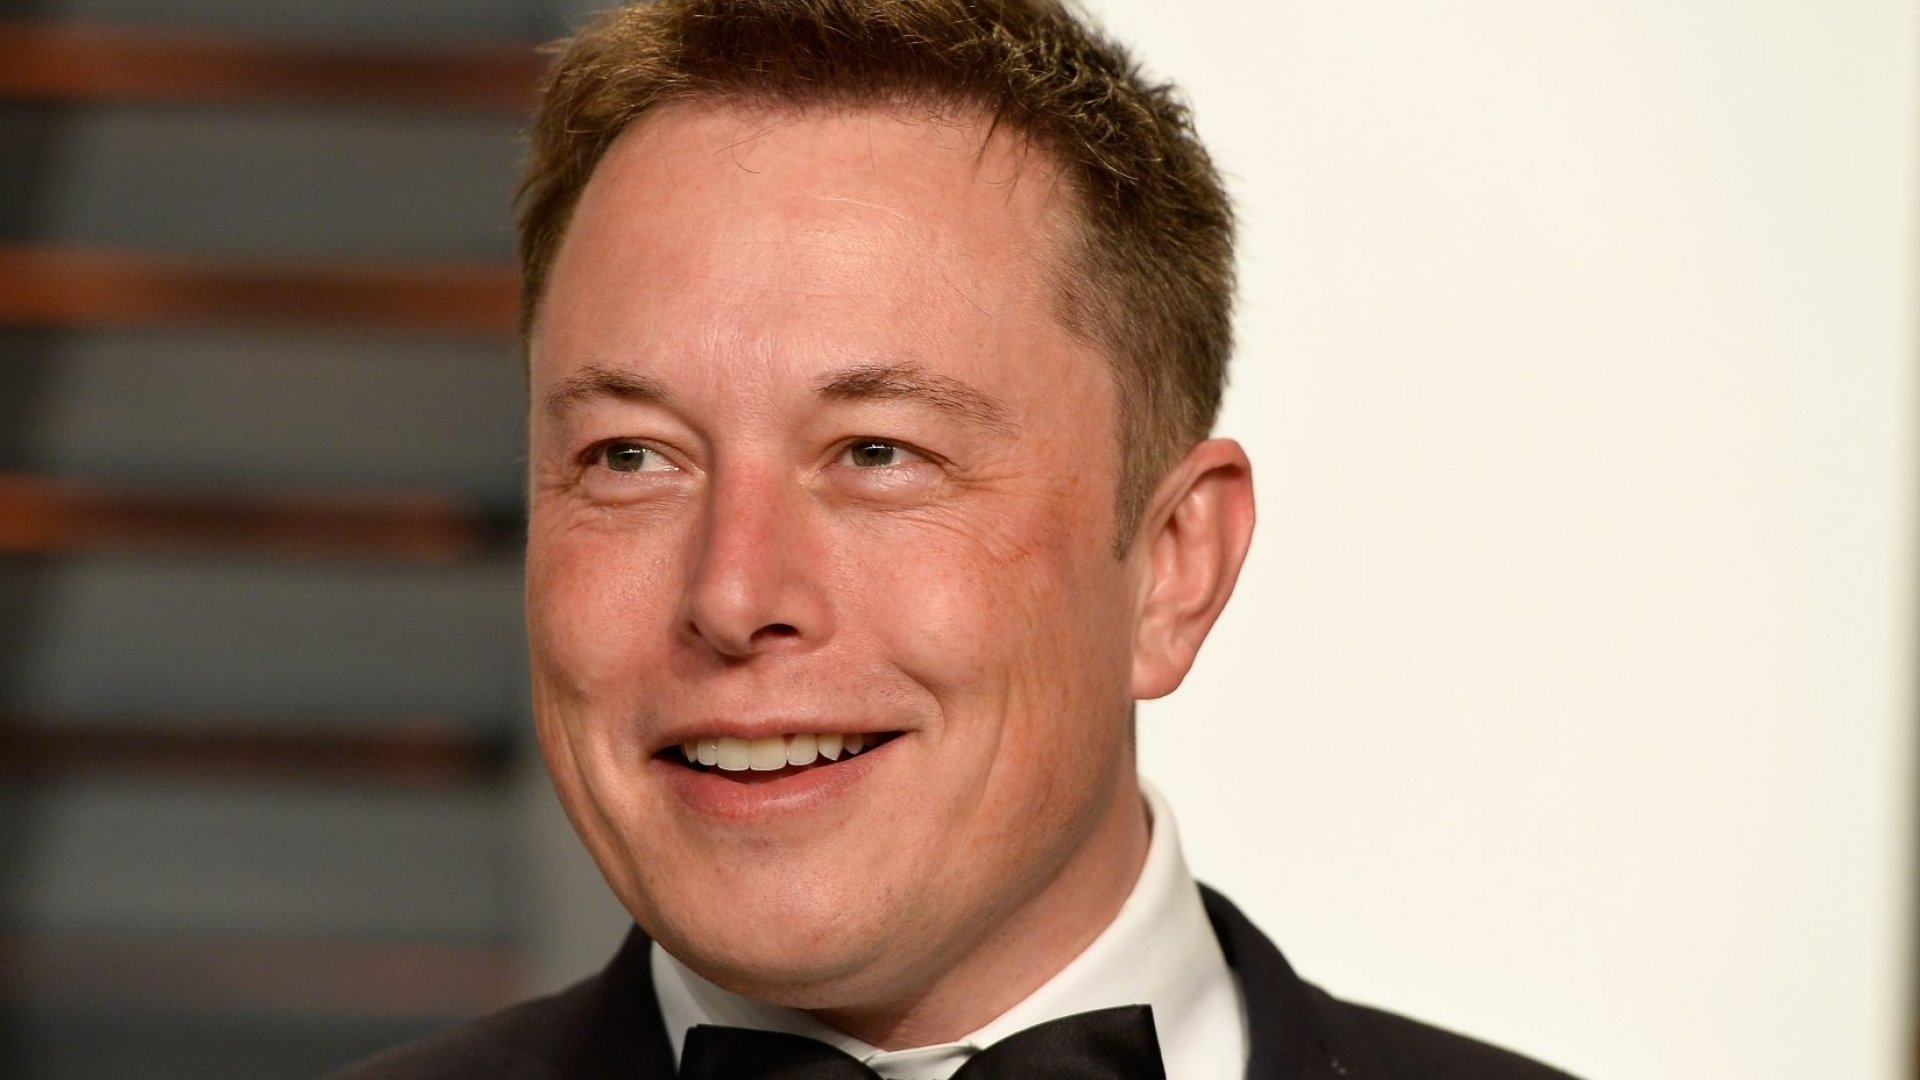 A Tesla Customer Complained on Twitter. Less Than 30 Minutes Later, Elon Musk Promised to Fix It